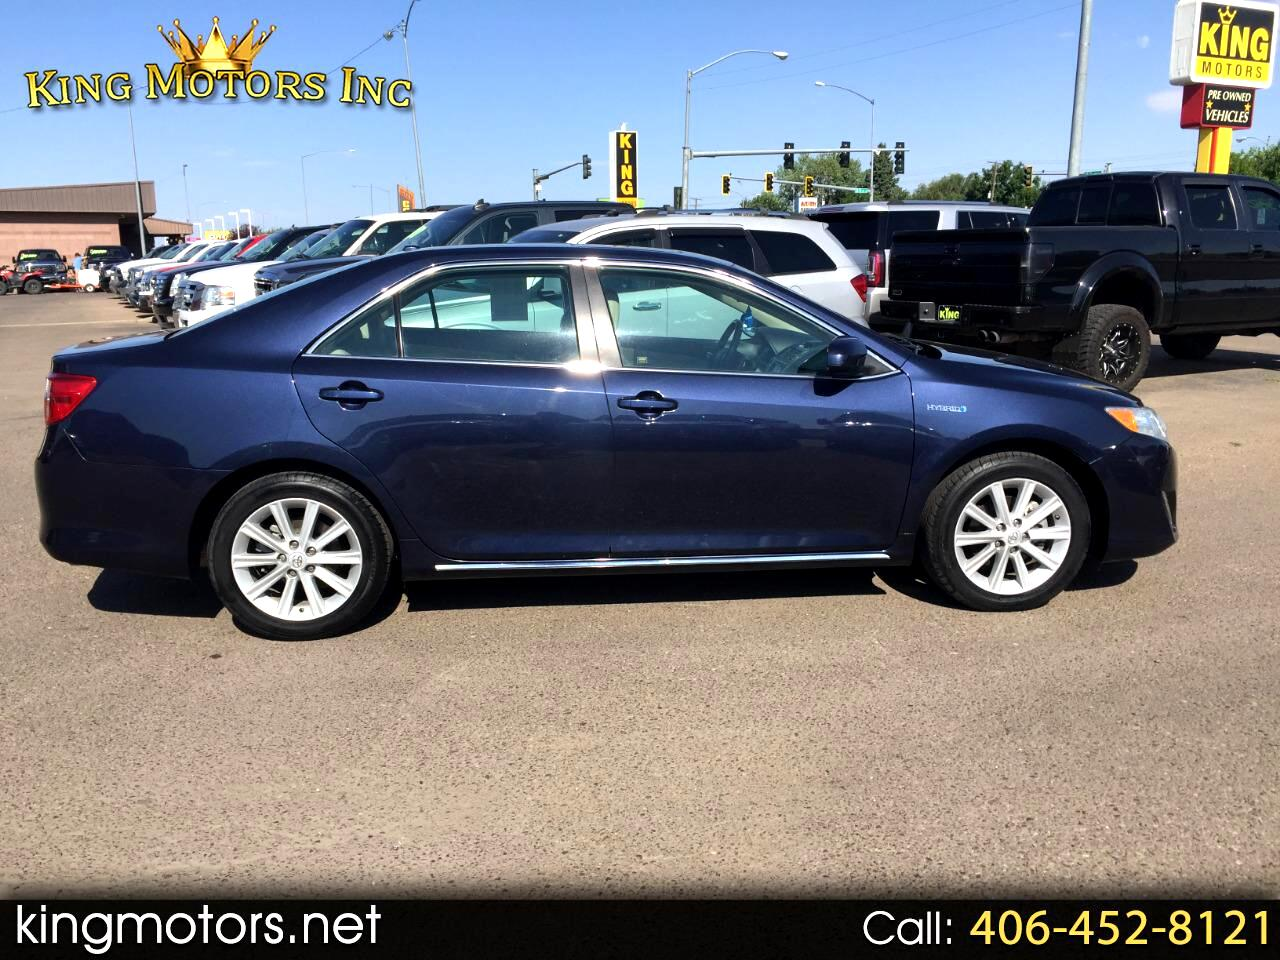 2014 Toyota Camry Hybrid 2014.5 4dr Sdn XLE (Natl)